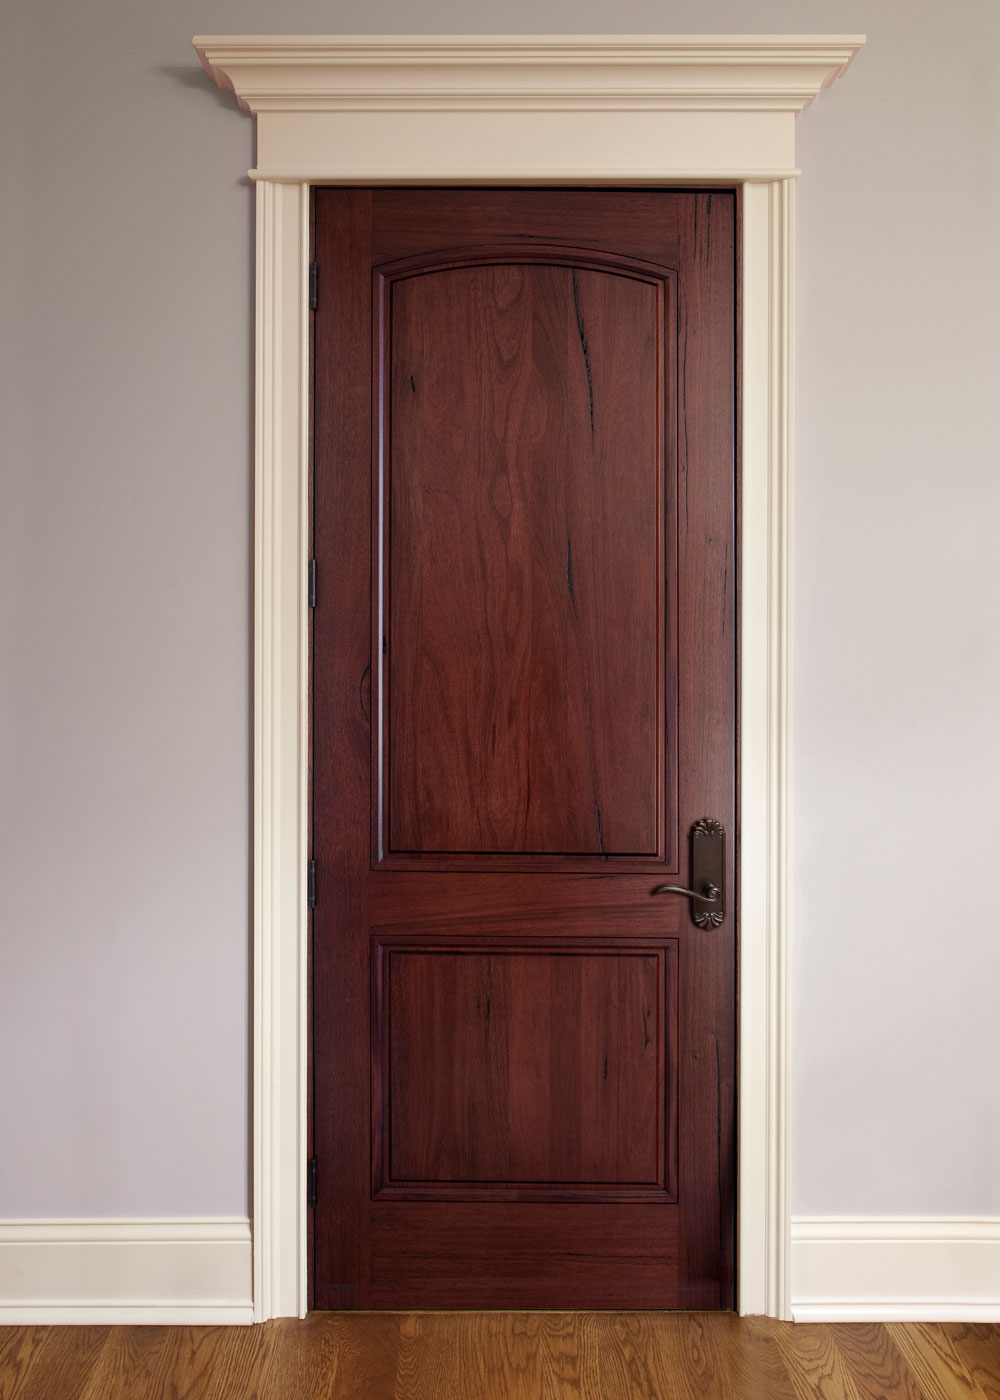 Images of interior doors dbi-m-701p zoom classic vgwfzpz